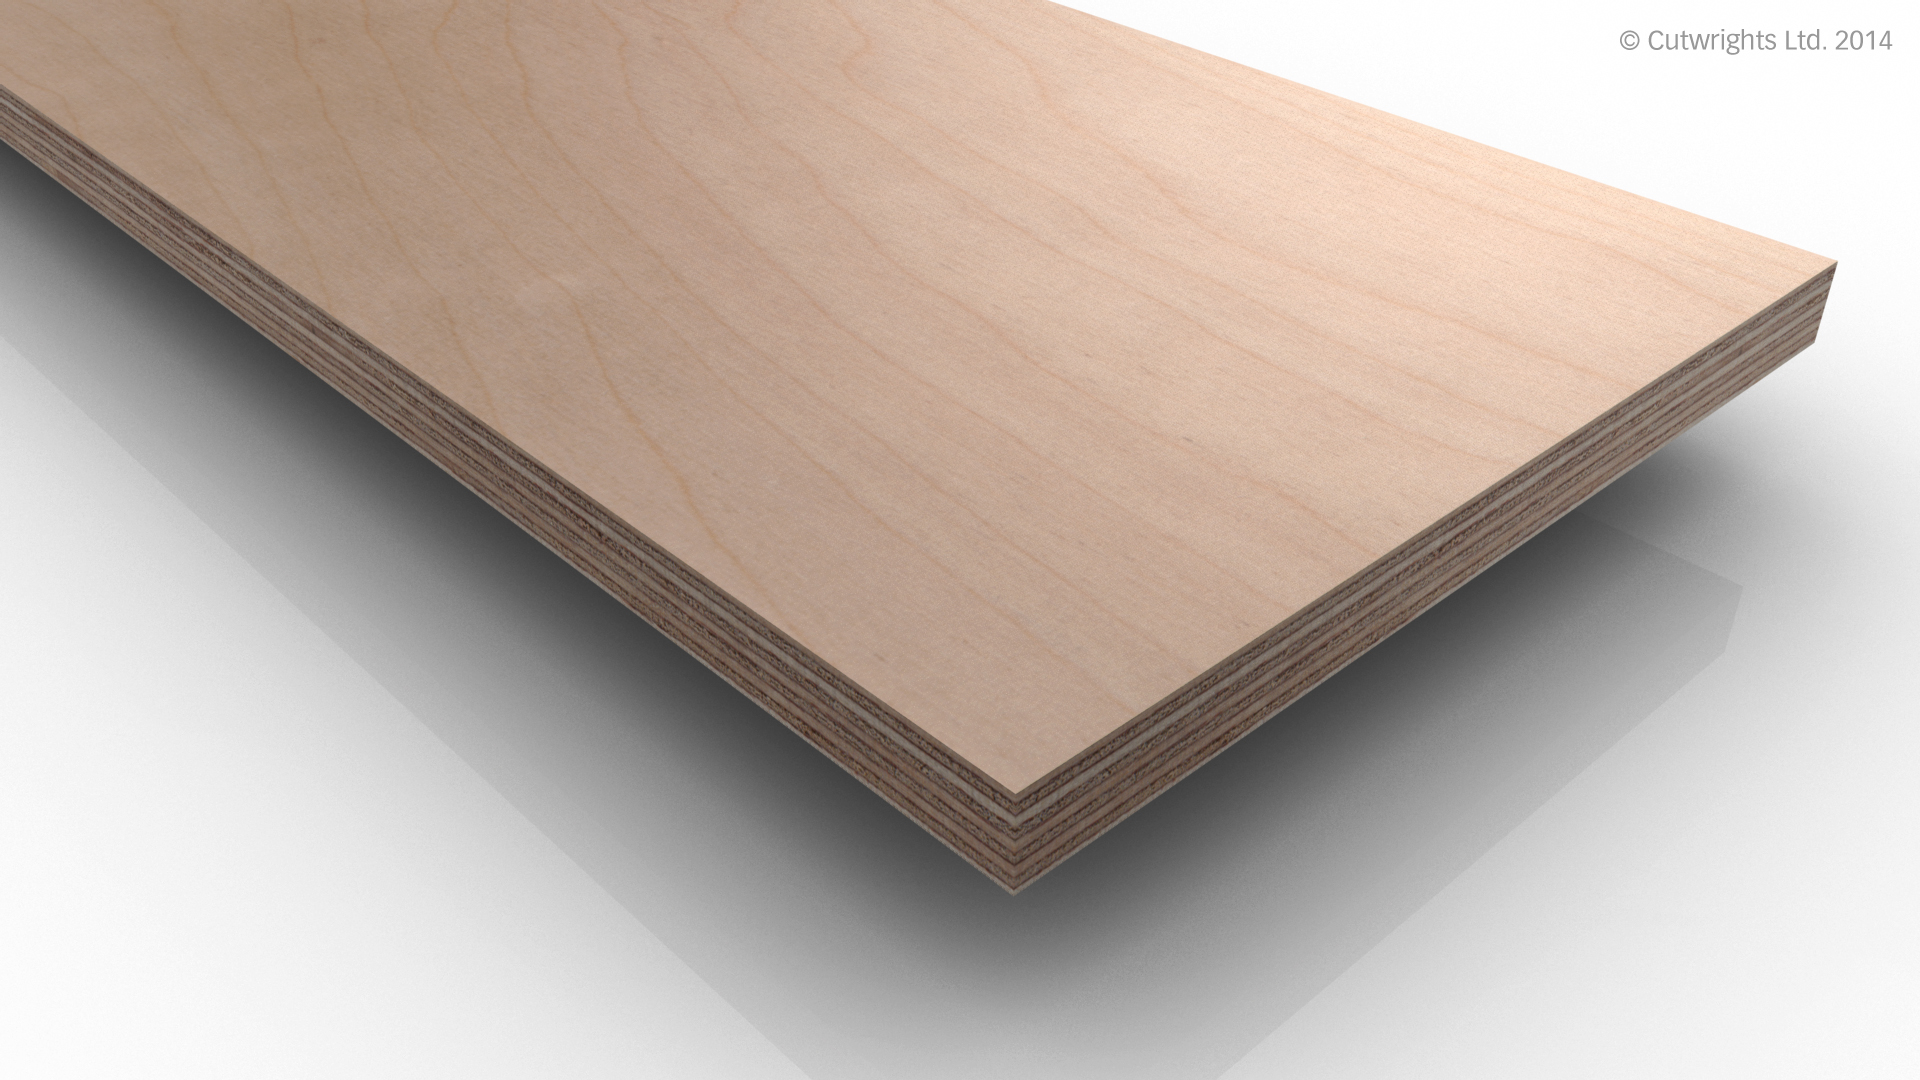 Mm birch plywood wbp bb board cutwrights